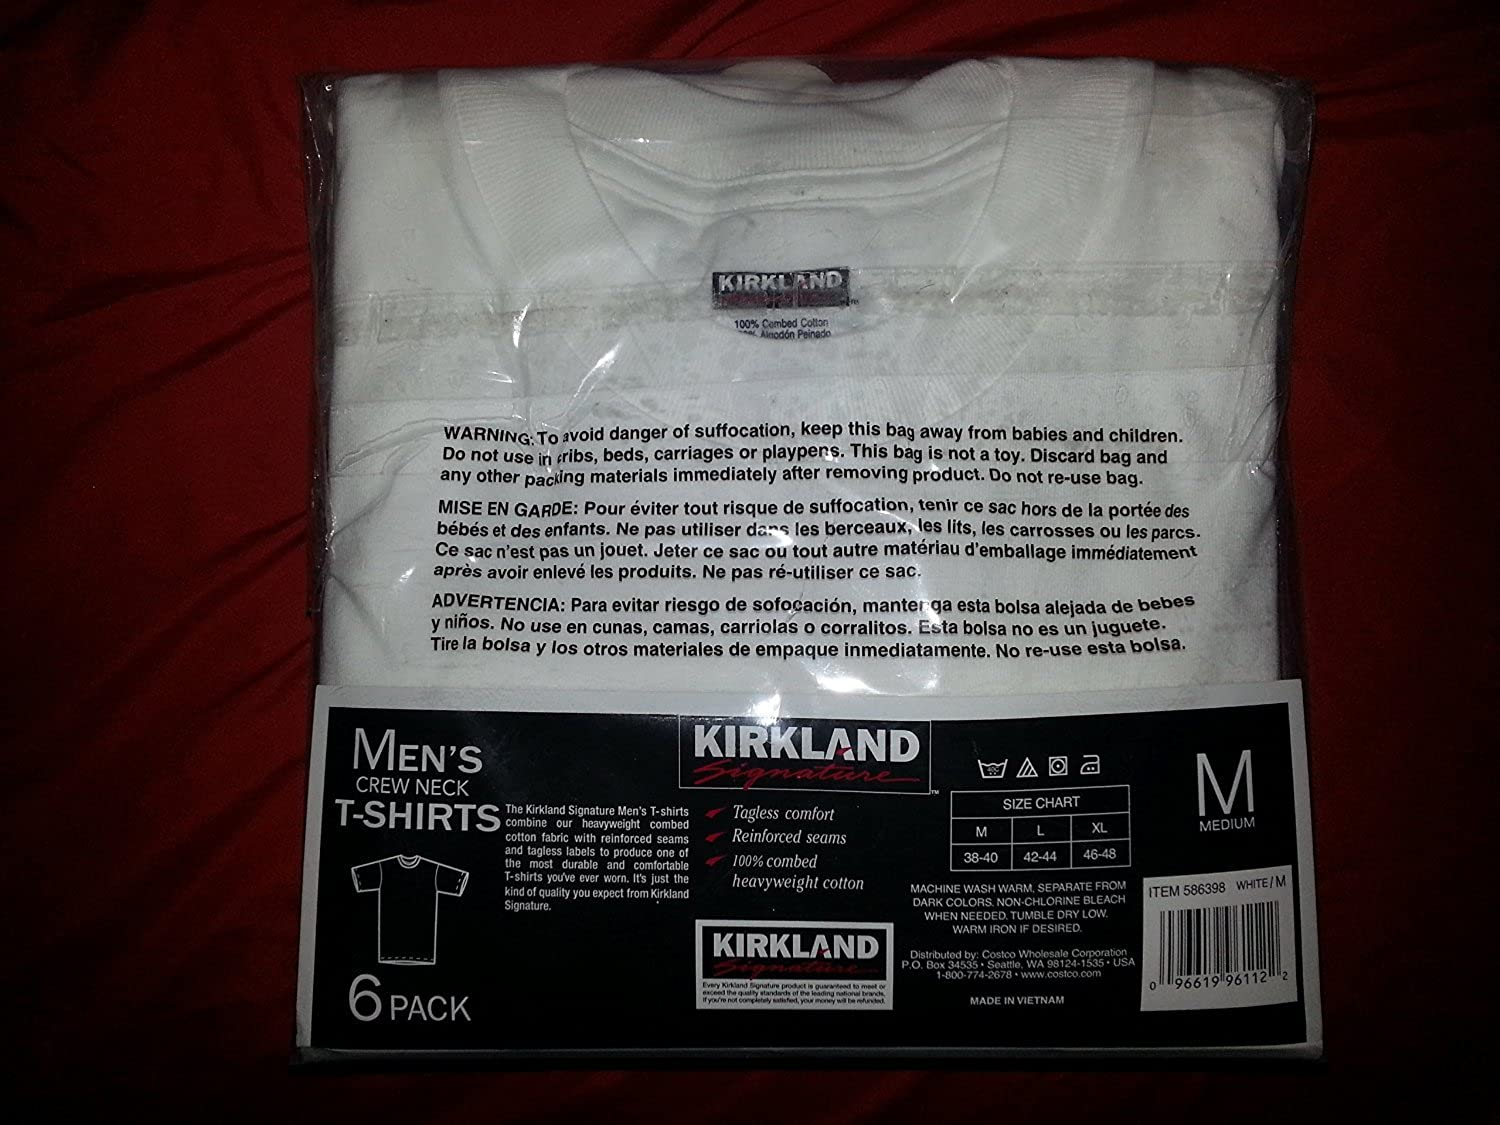 Kirkland black t shirts xl - Amazon Com 6 Pack Kirkland Signature Men S Crew Neck T Shirts 100 Cotton Tagless White Clothing